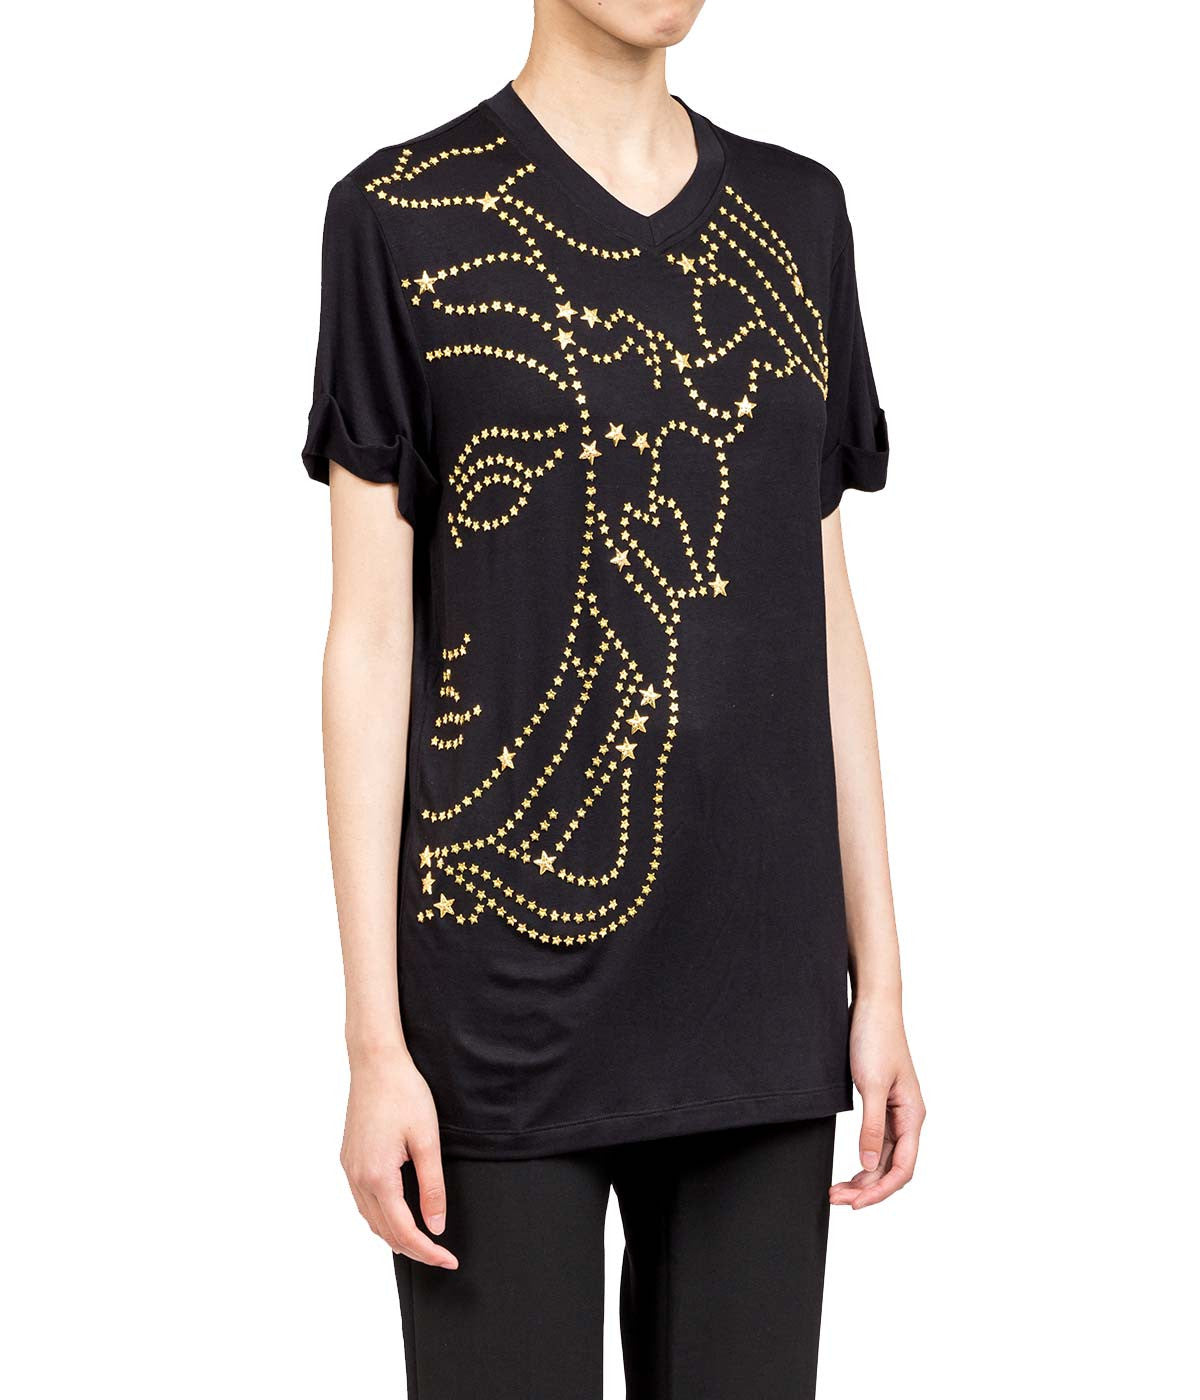 Black Embellished Star T-shirt